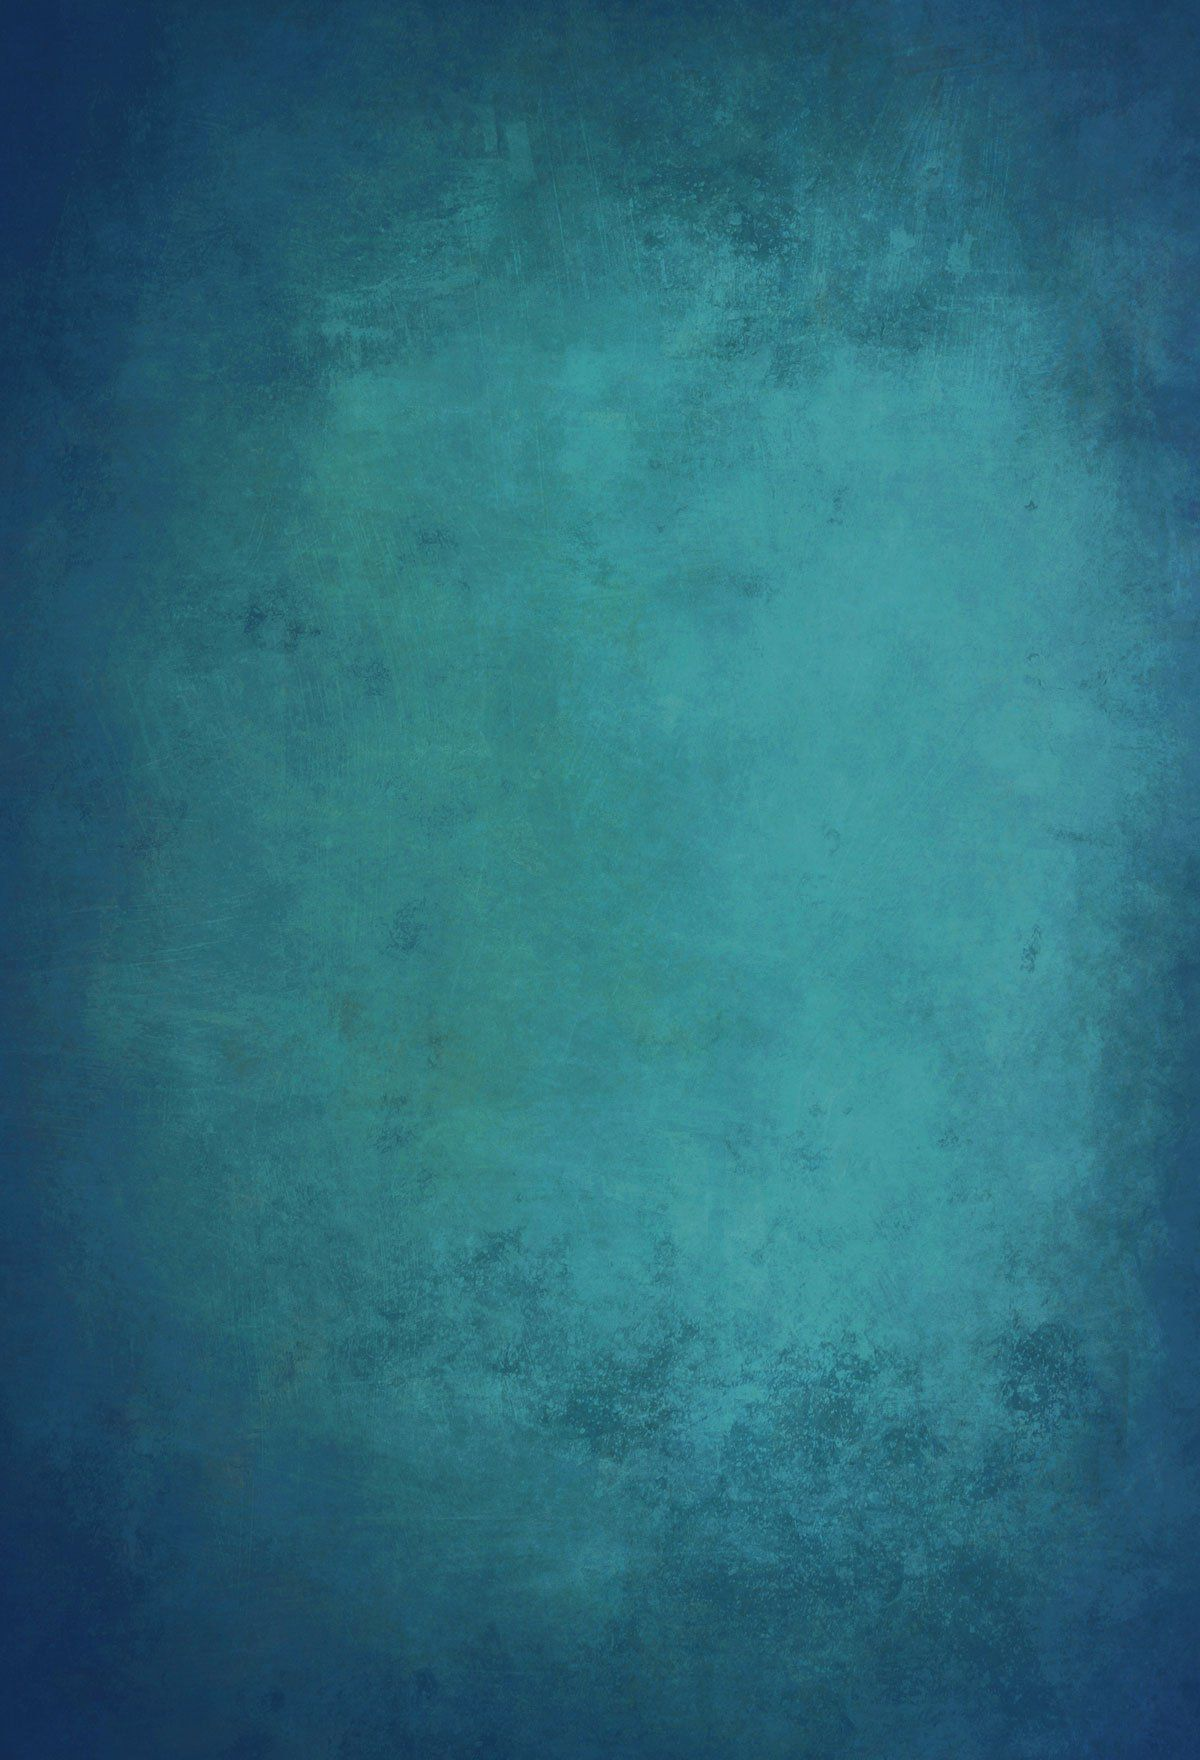 Kate Deep Cold Blue Green Backdrop Texture Abstract Green Backdrops Portrait Background Textured Background